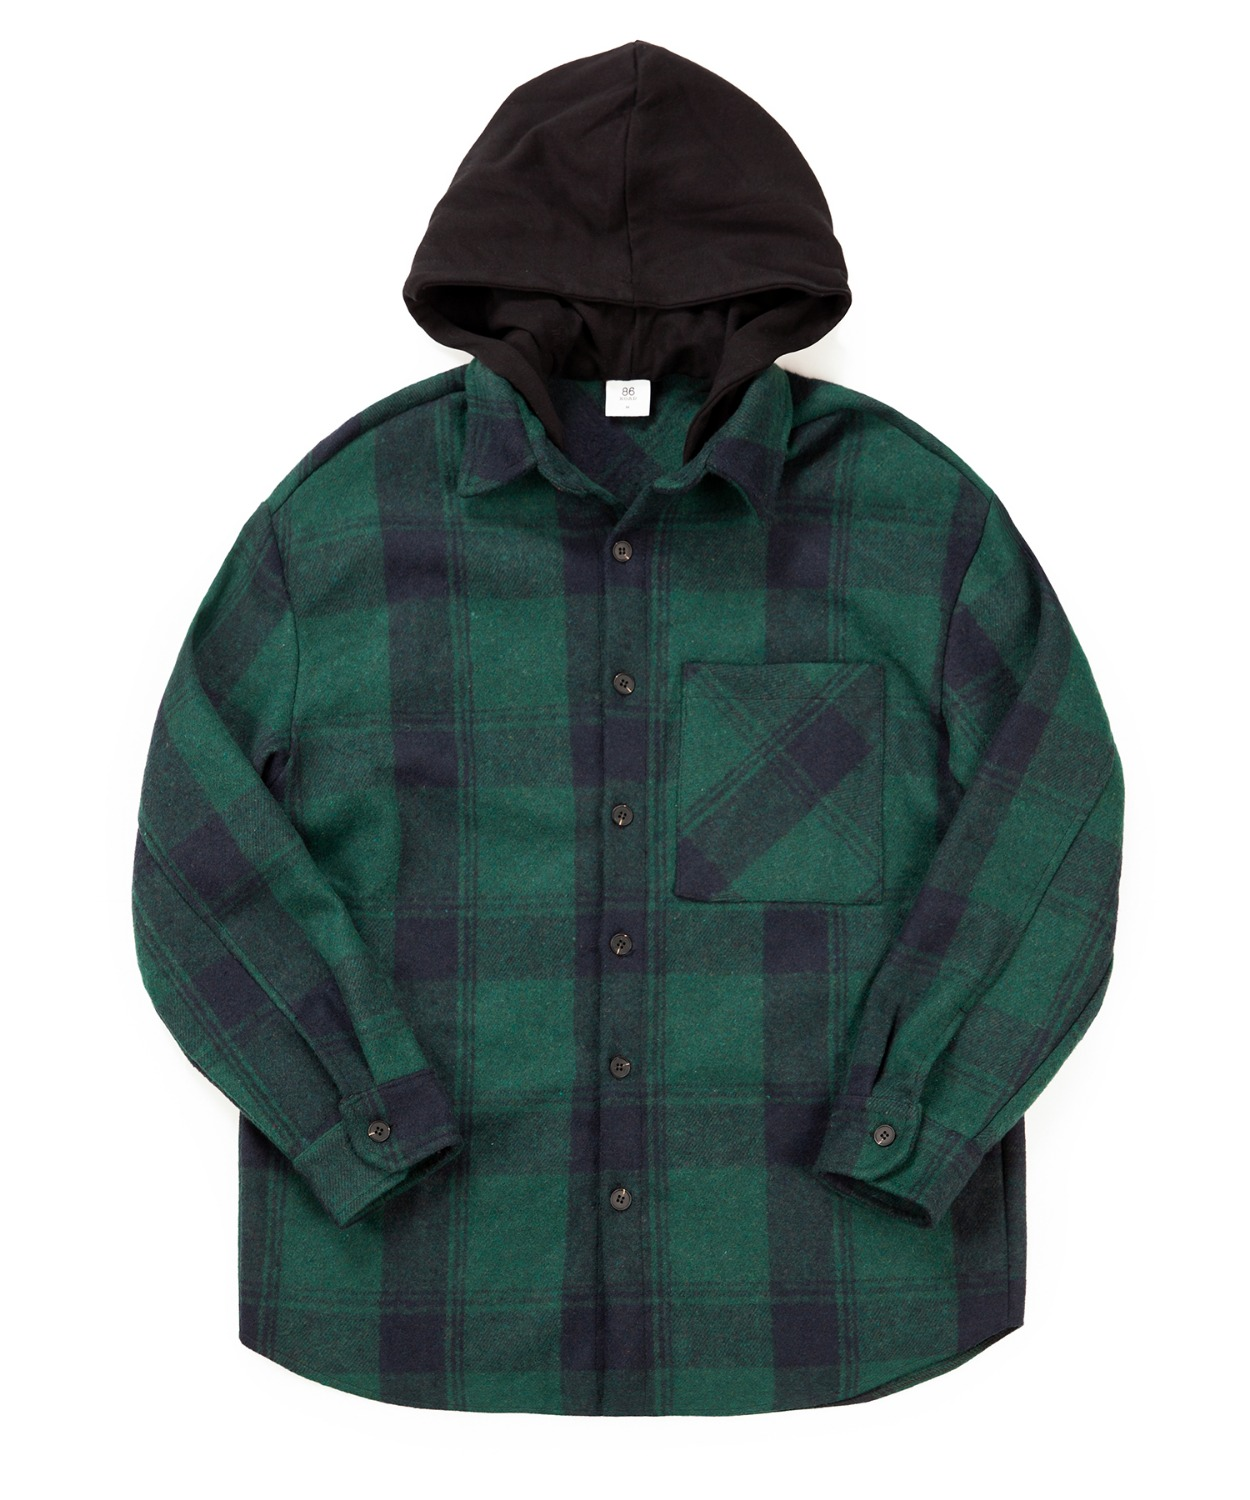 Hood Check Shirts Jacket - Green(50%SALE)